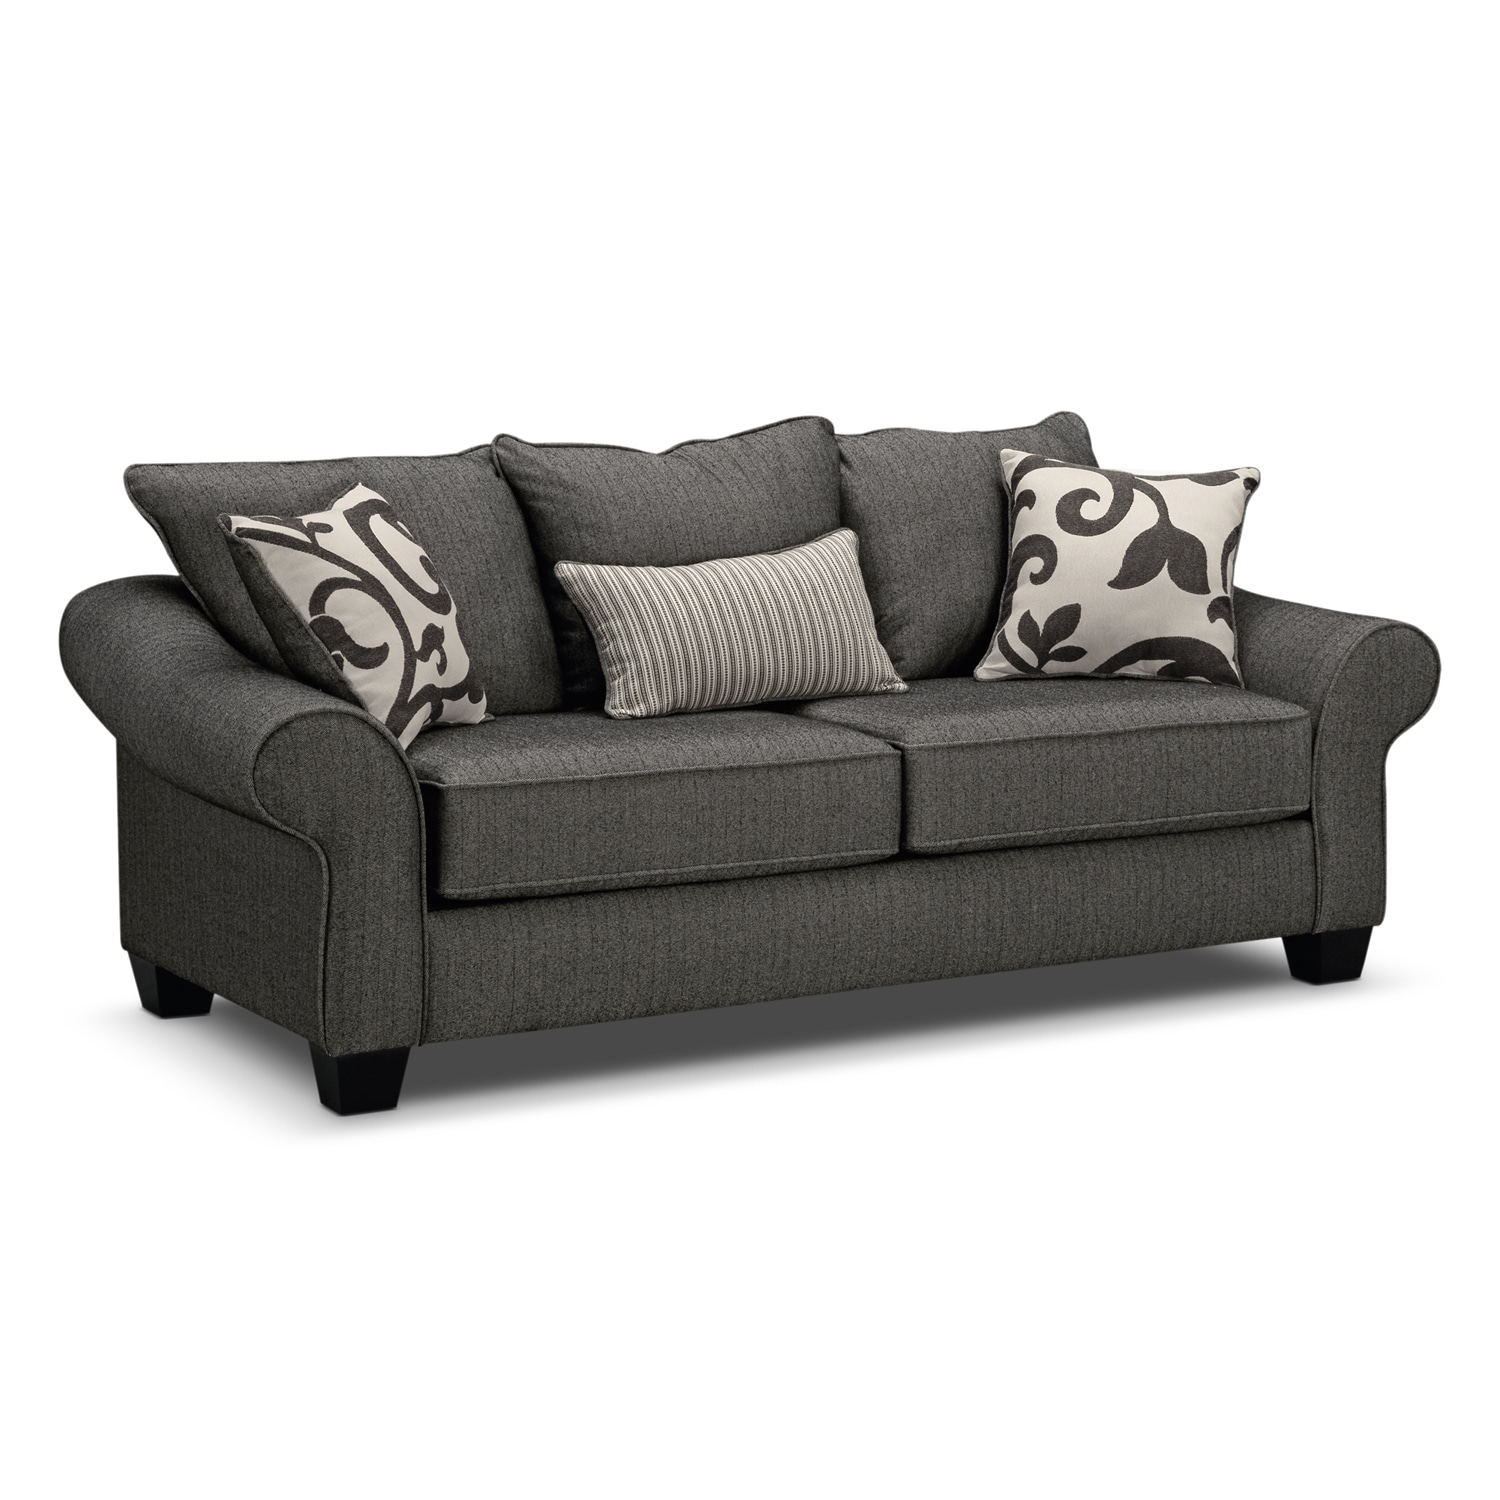 Living Room Furniture - Colette Sofa - Gray